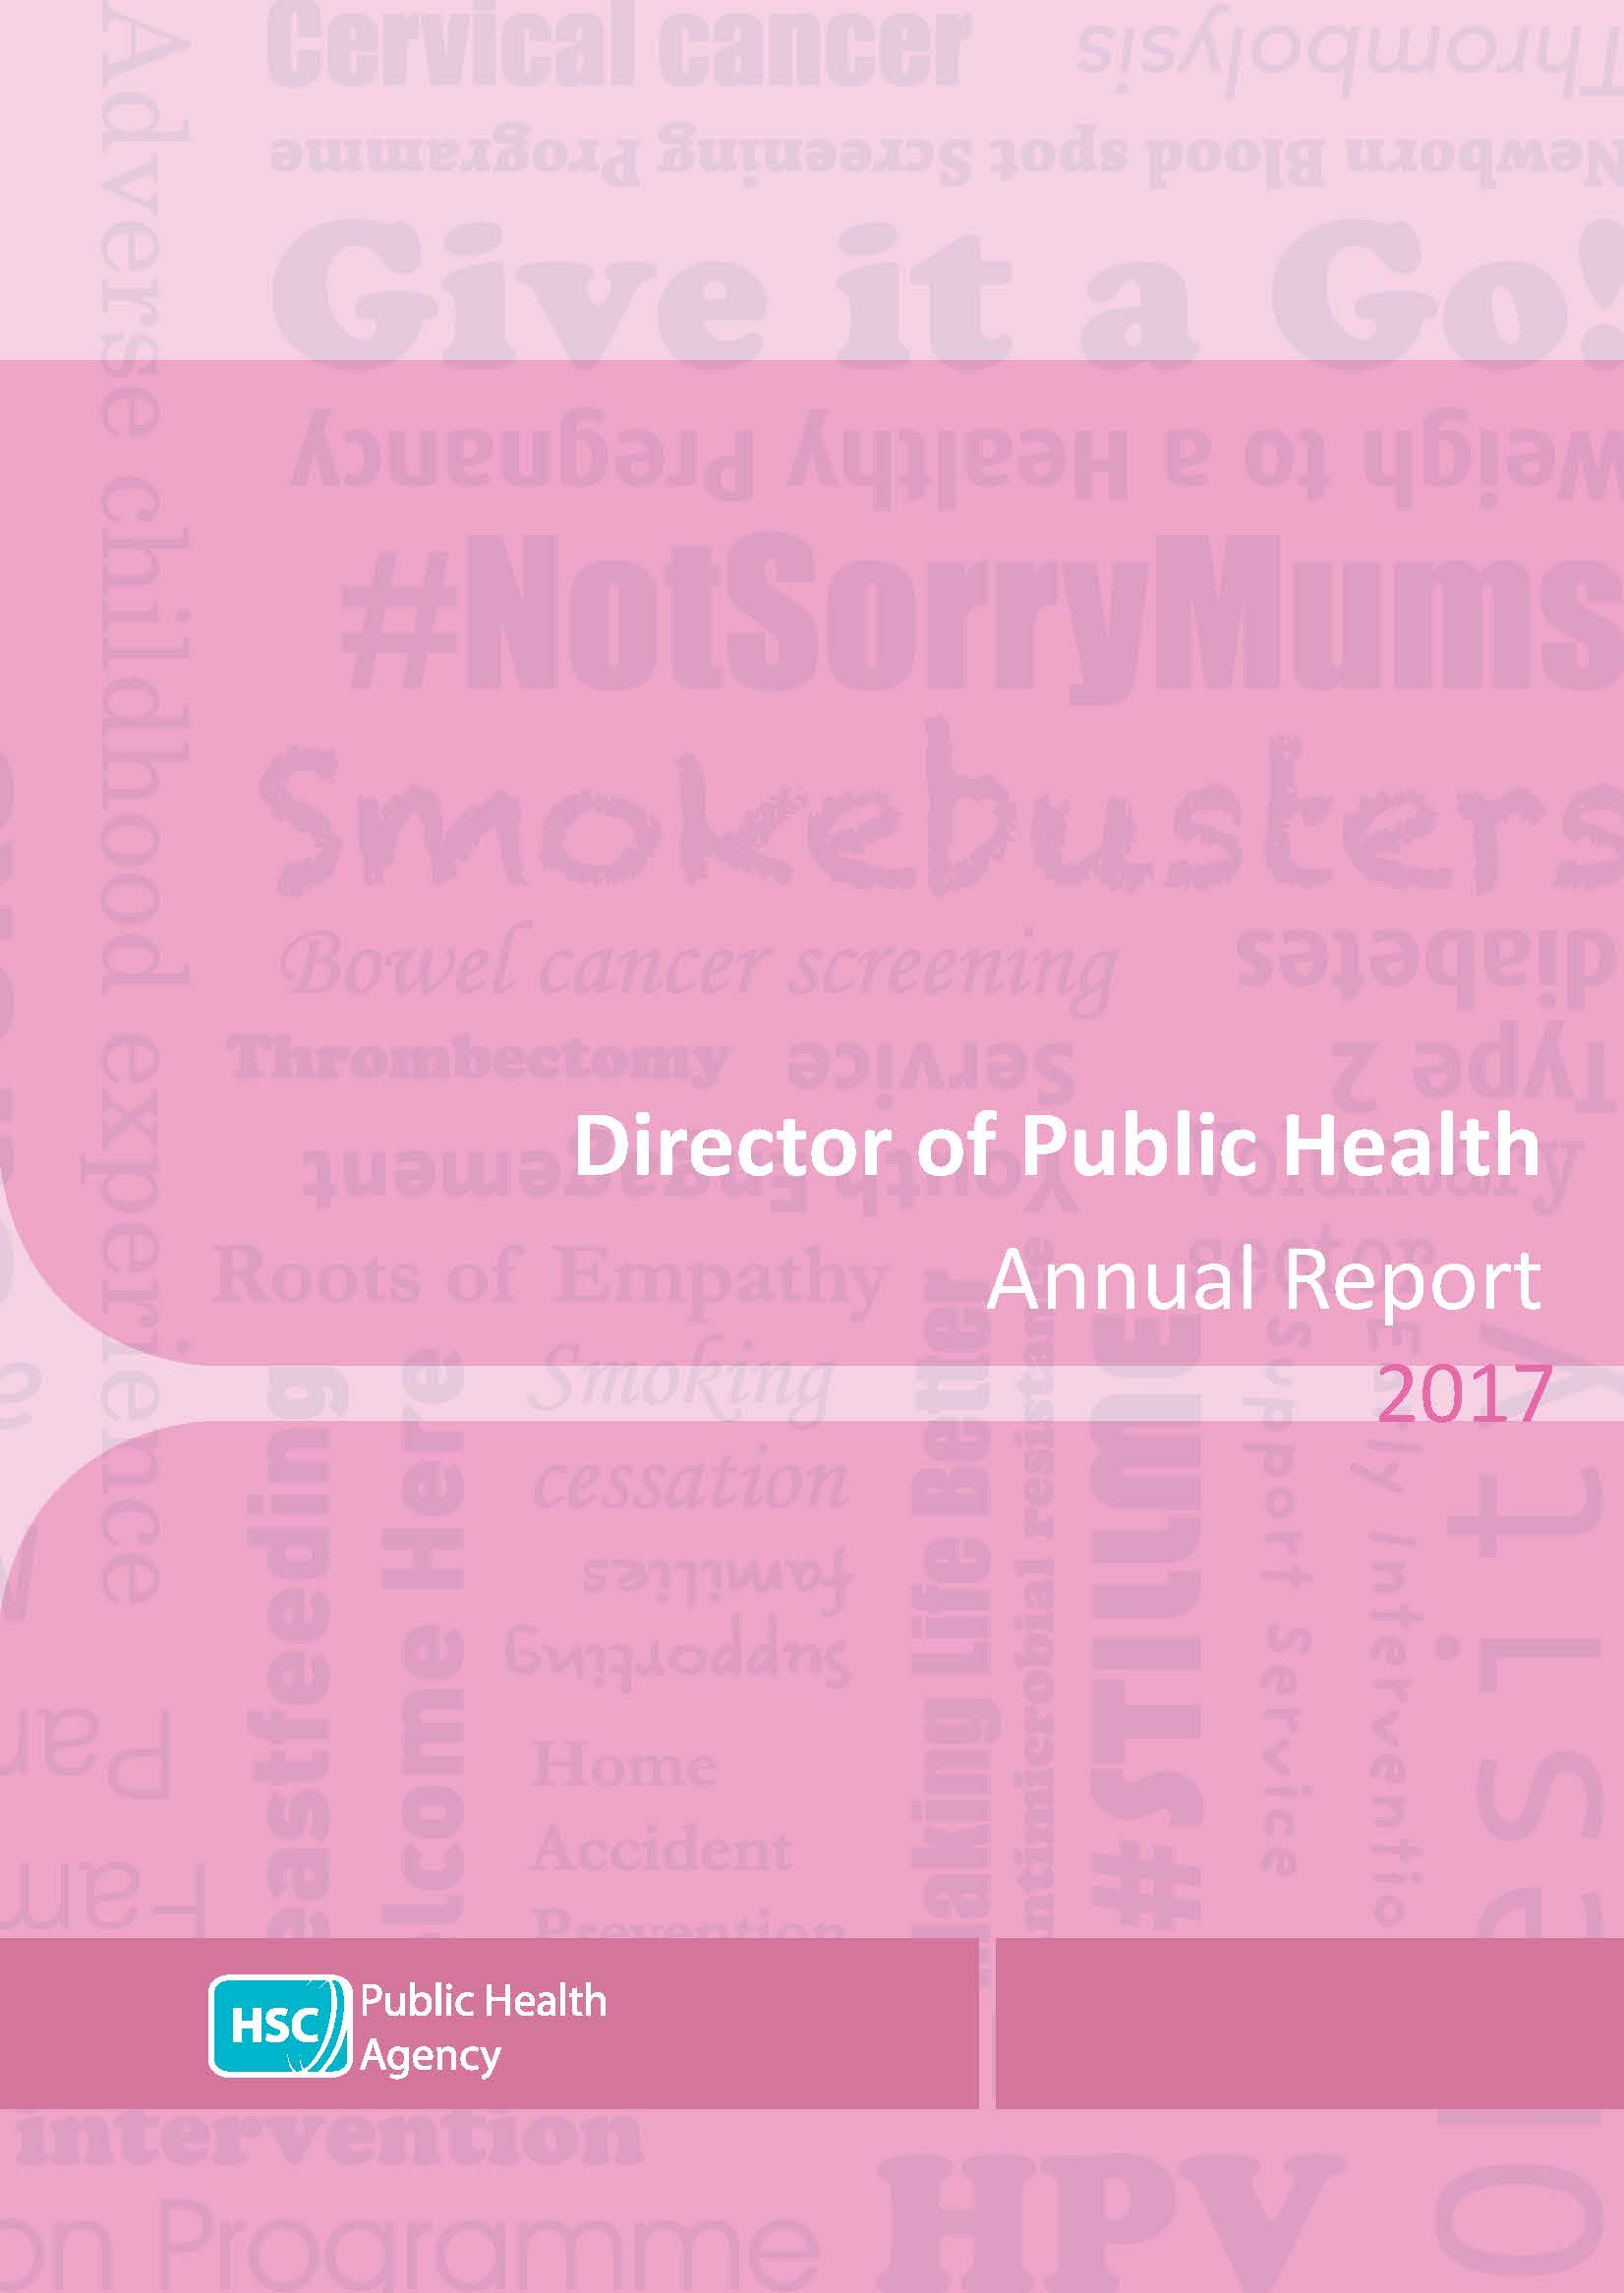 Director of Public Health Annual Report 2017